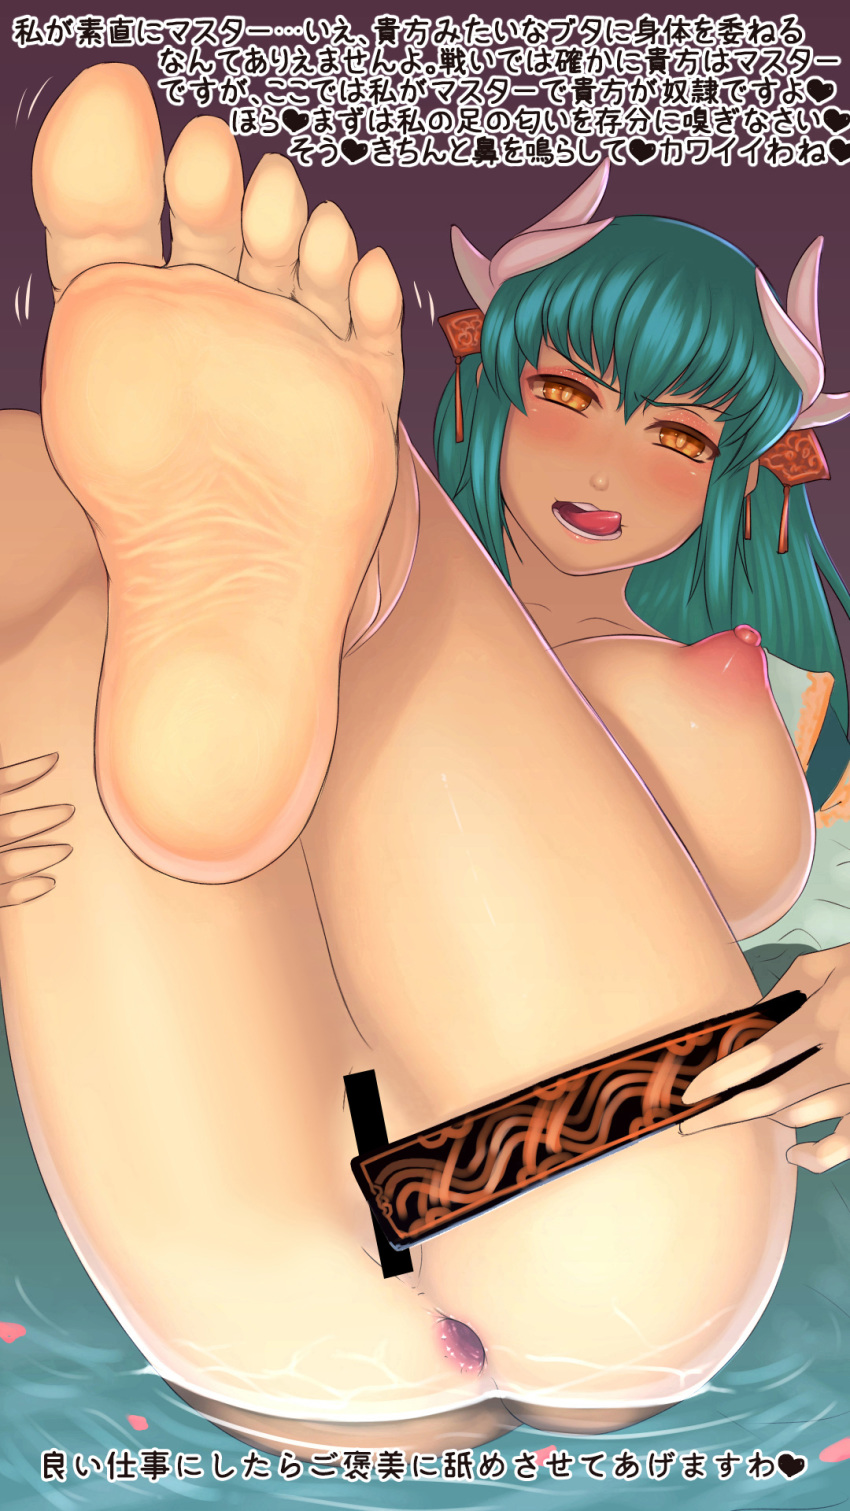 fate/grand order kiyohime Gay sex with socks on